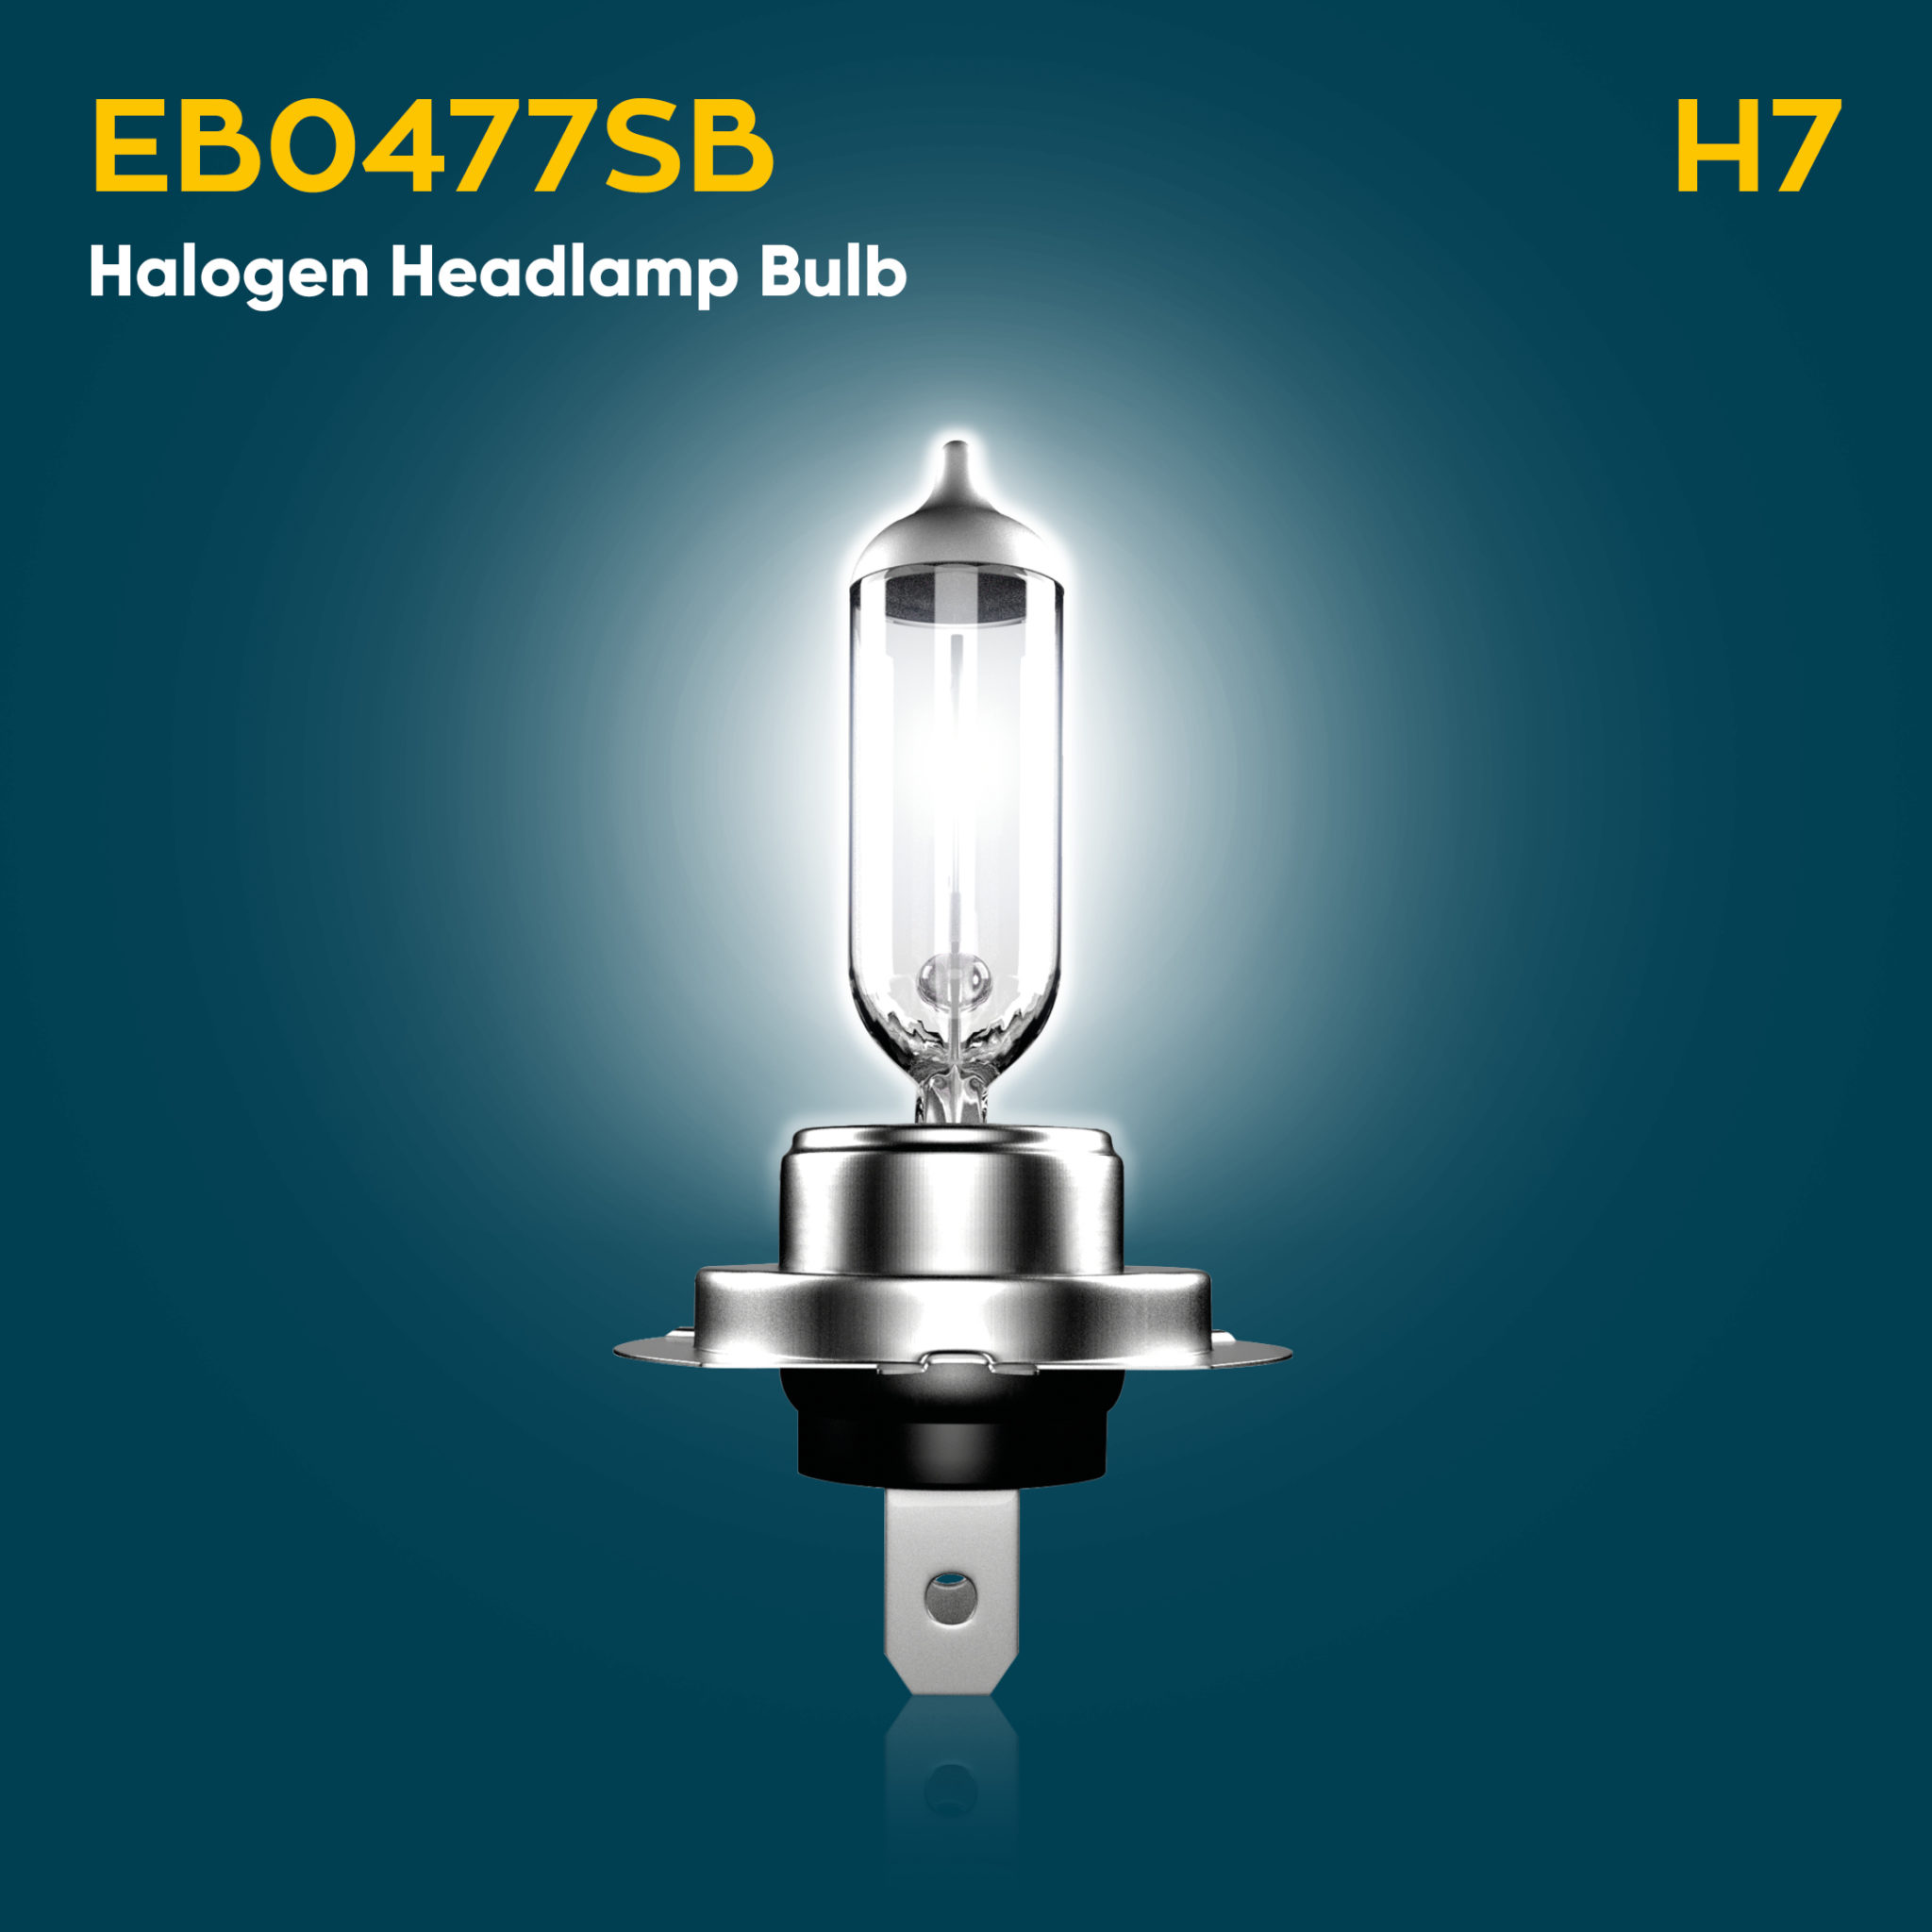 Ford Focus EcoBoost Halogen Headlamp Bulb